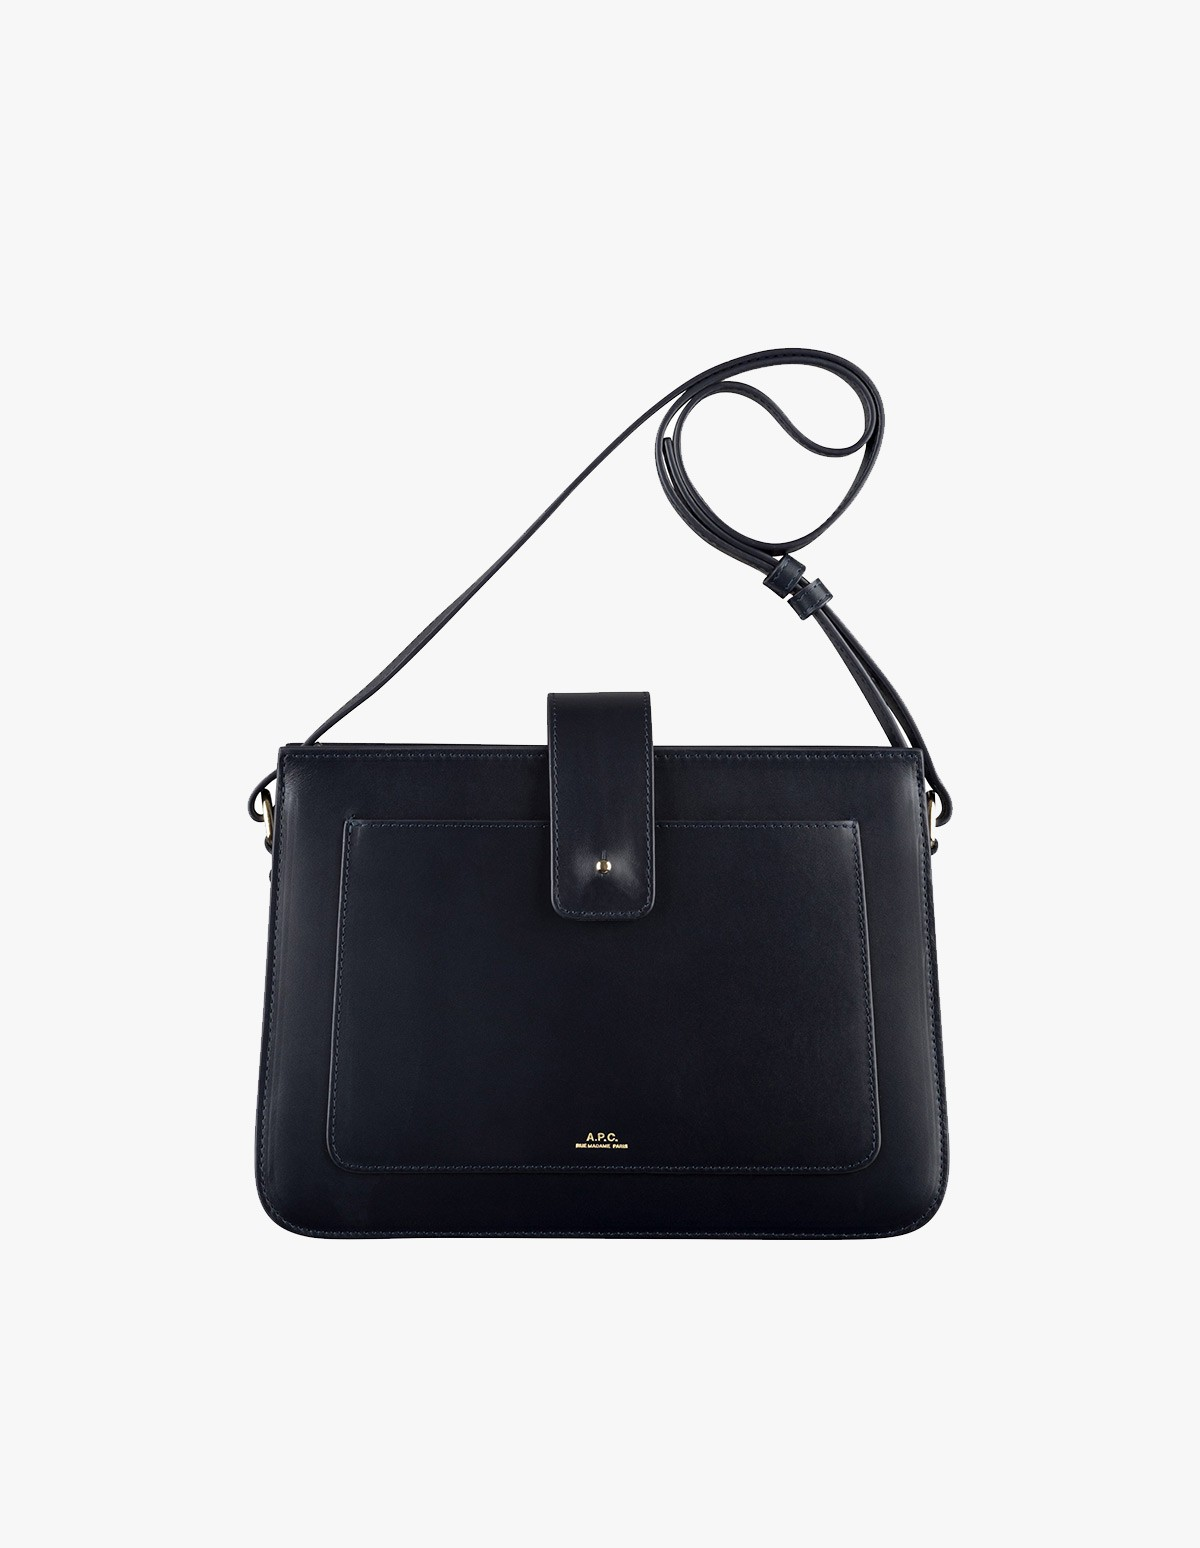 A.P.C. Sac Albane in Dark Navy